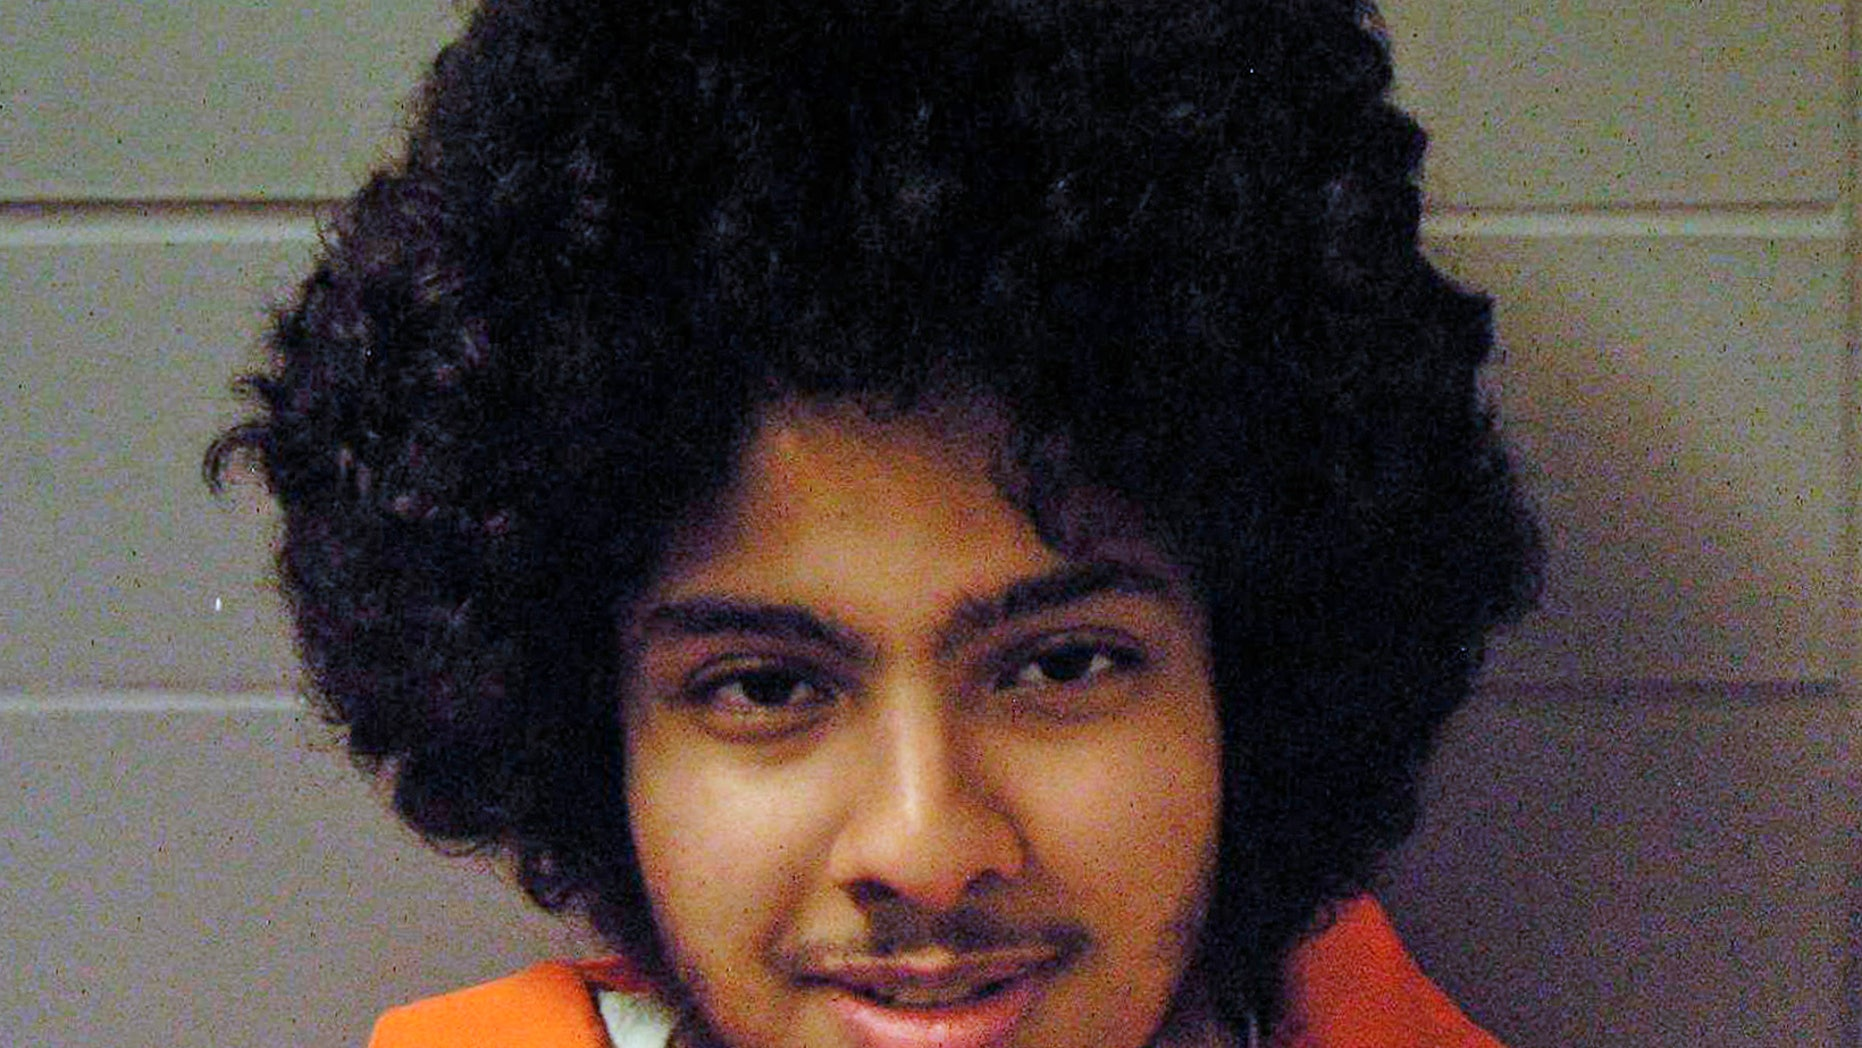 FILE - This undated file photo provided by the U.S. Marshals office shows Chicago terrorism suspect Adel Daoud. Judge Sharon Johnson Coleman handed Adel Daouda 16-year prison sentence for trying to kill hundreds of people by detonating a car bomb outside a Chicago bar in 2012, saying she factored in his mental health in imposing a sentence much lower than prosecutors requested. The sentence announced Monday, May 6, 2019 in Chicago for Daoud includes time for related convictions for later attempting to have an FBI agent killed and for slashing an inmate with a shiv for taunting him with a drawing of the Prophet Muhammad. (U.S. Marshals office via AP, File)